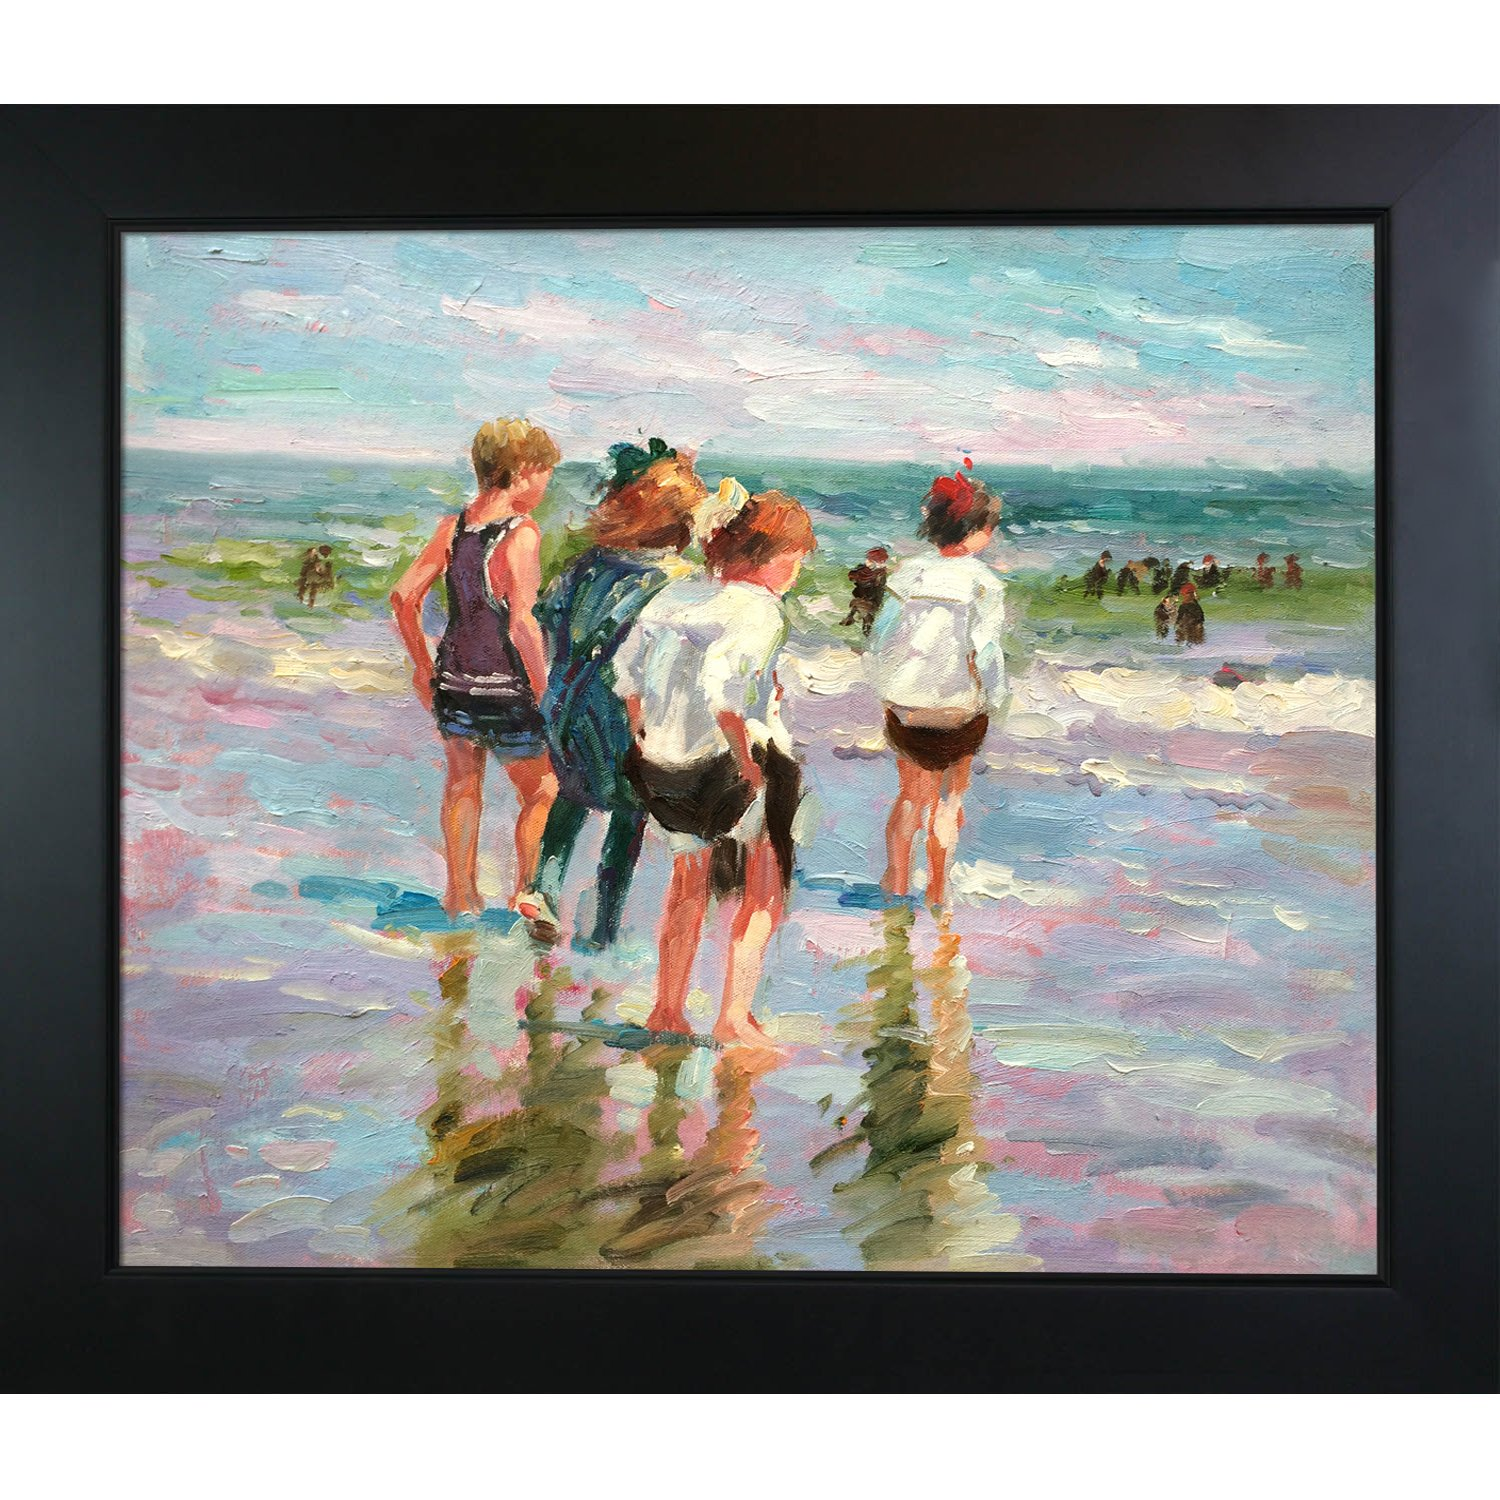 overstockArt Summer Day Brighton Beach Framed Oil Reproduction of an Original Painting by Edward Henry Potthast